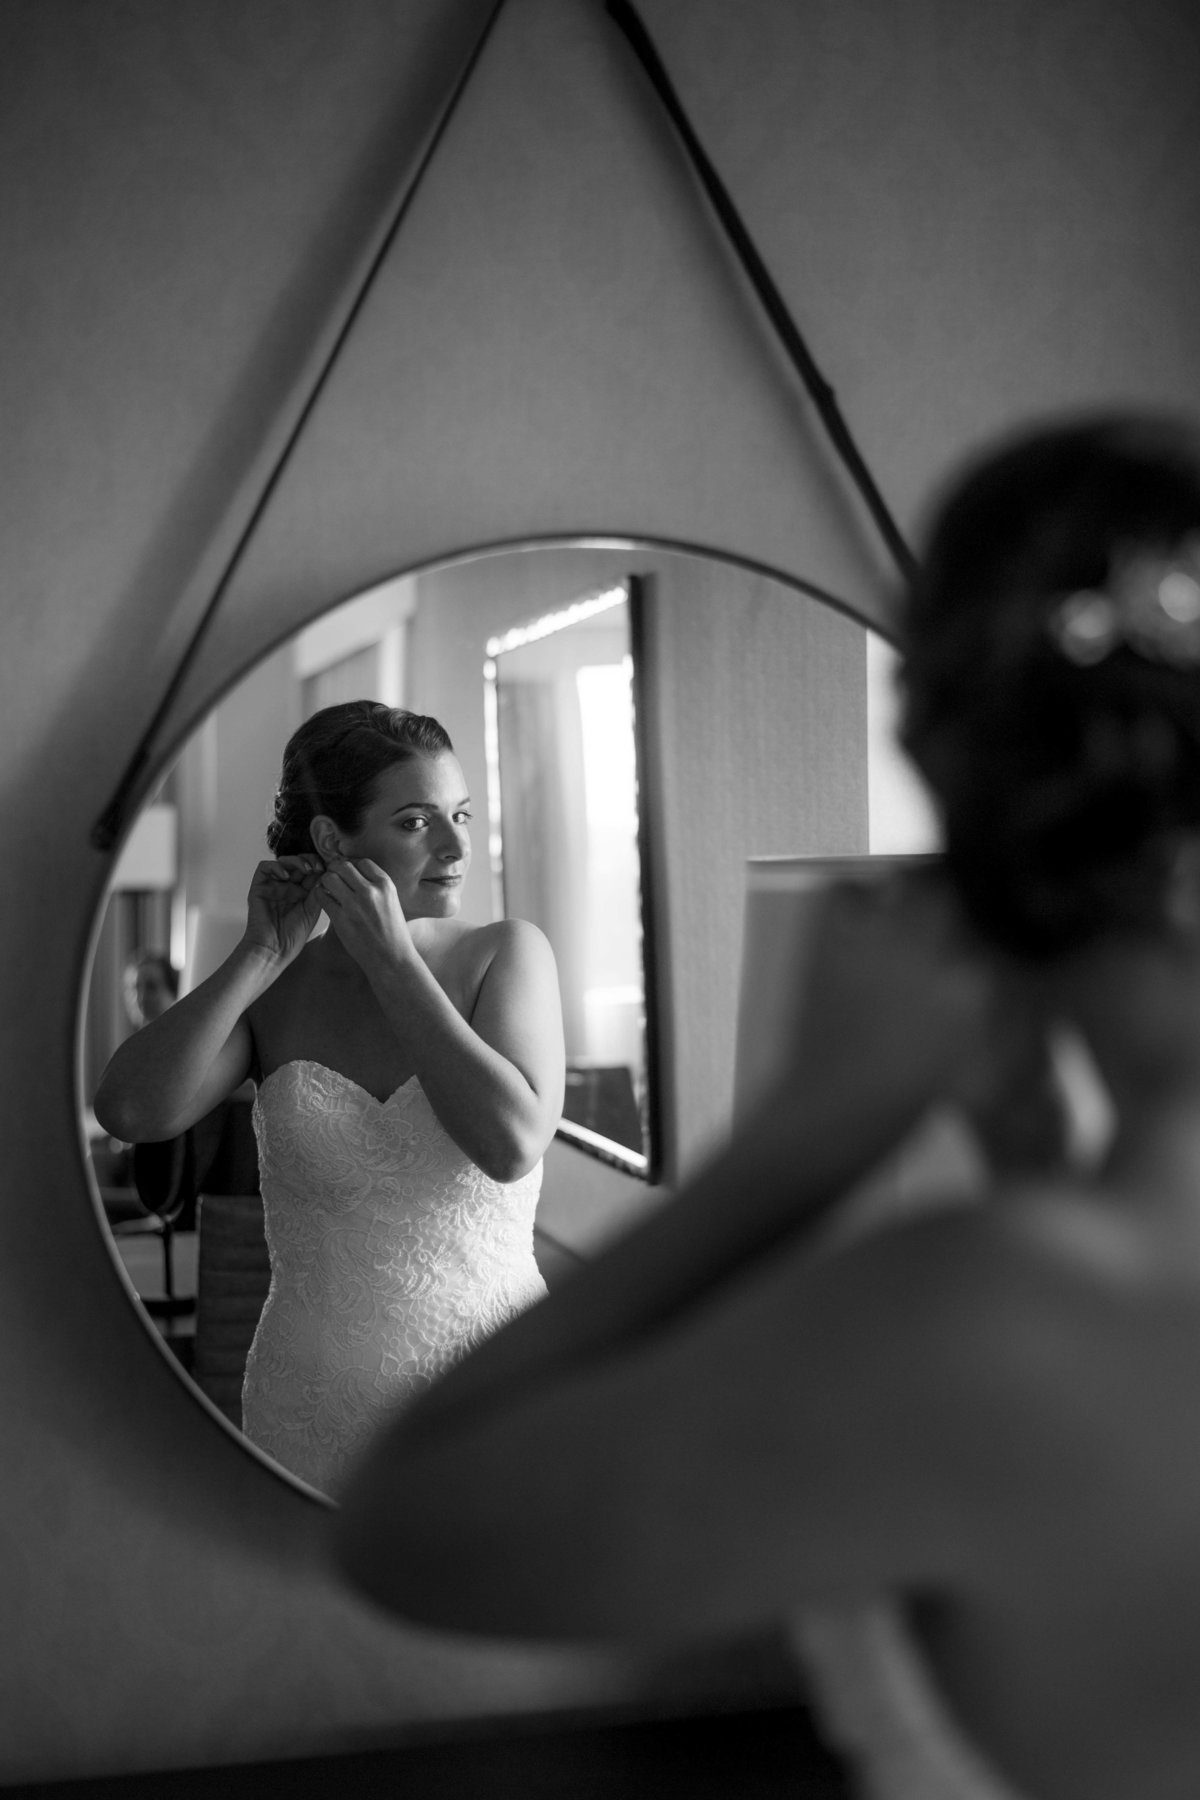 Landsdowne Resort Wedding by Leesburg Wedding Photographer, Erin Tetterton Photography